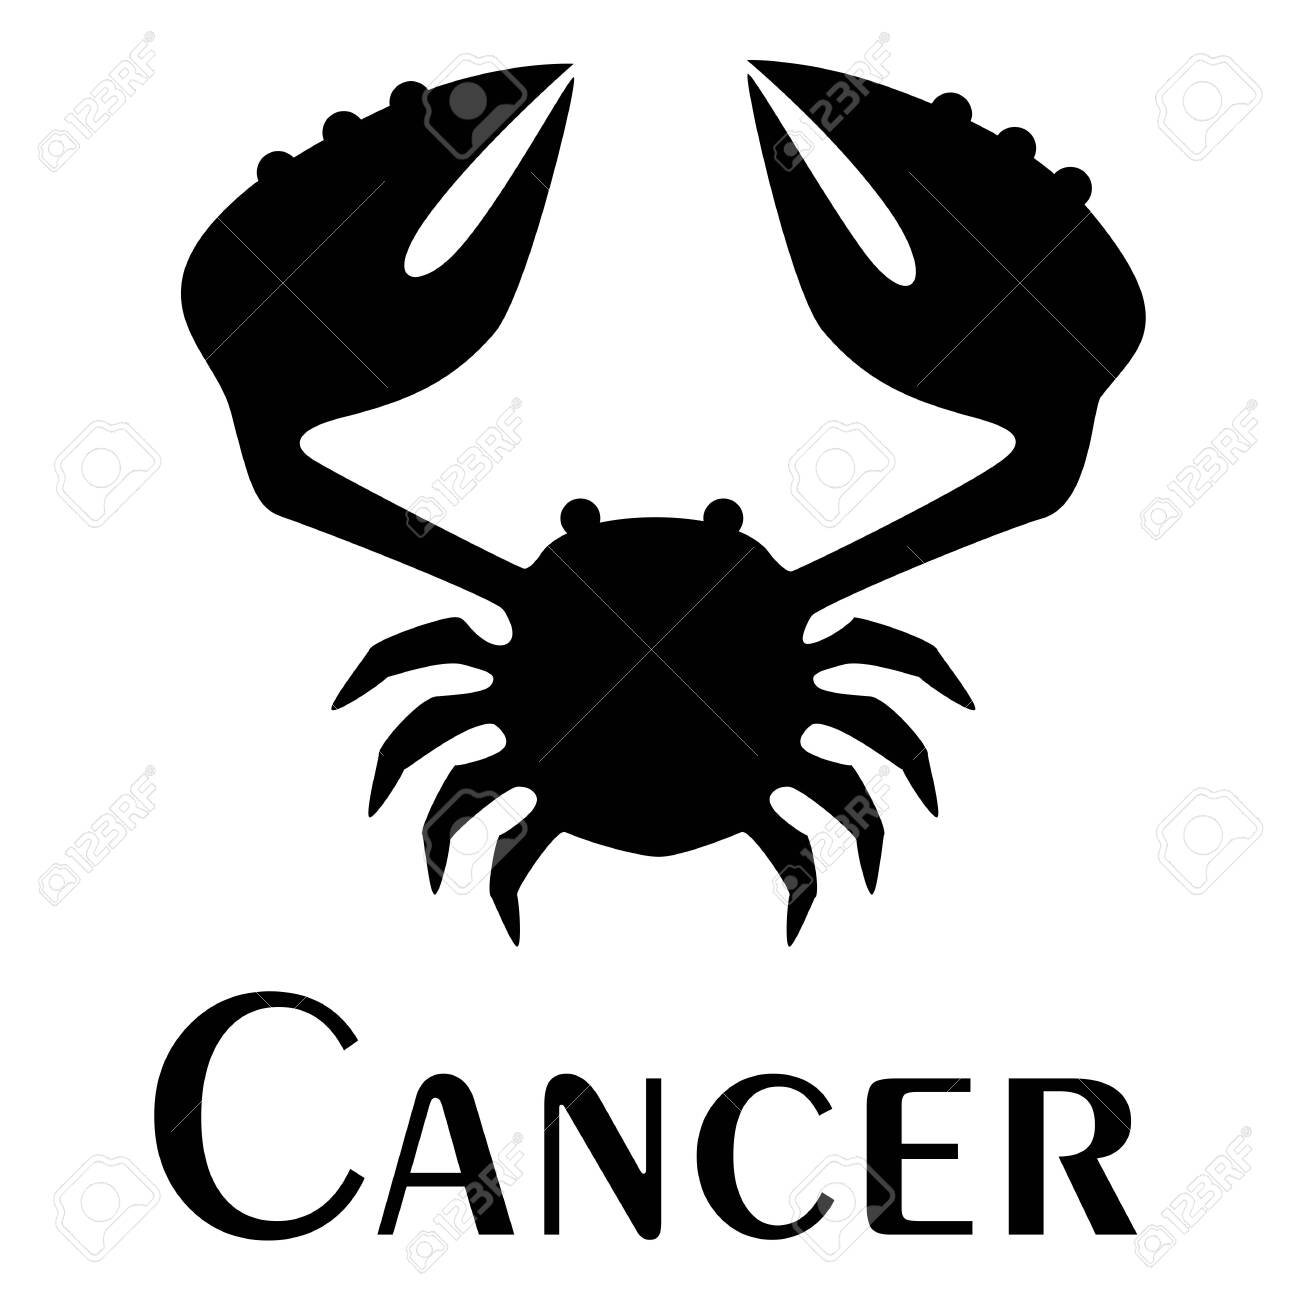 Cancer Zodiac Sign Logo Tattoo Vector Silhouette Image Royalty Free Cliparts Vectors And Stock Illustration Image 134741903